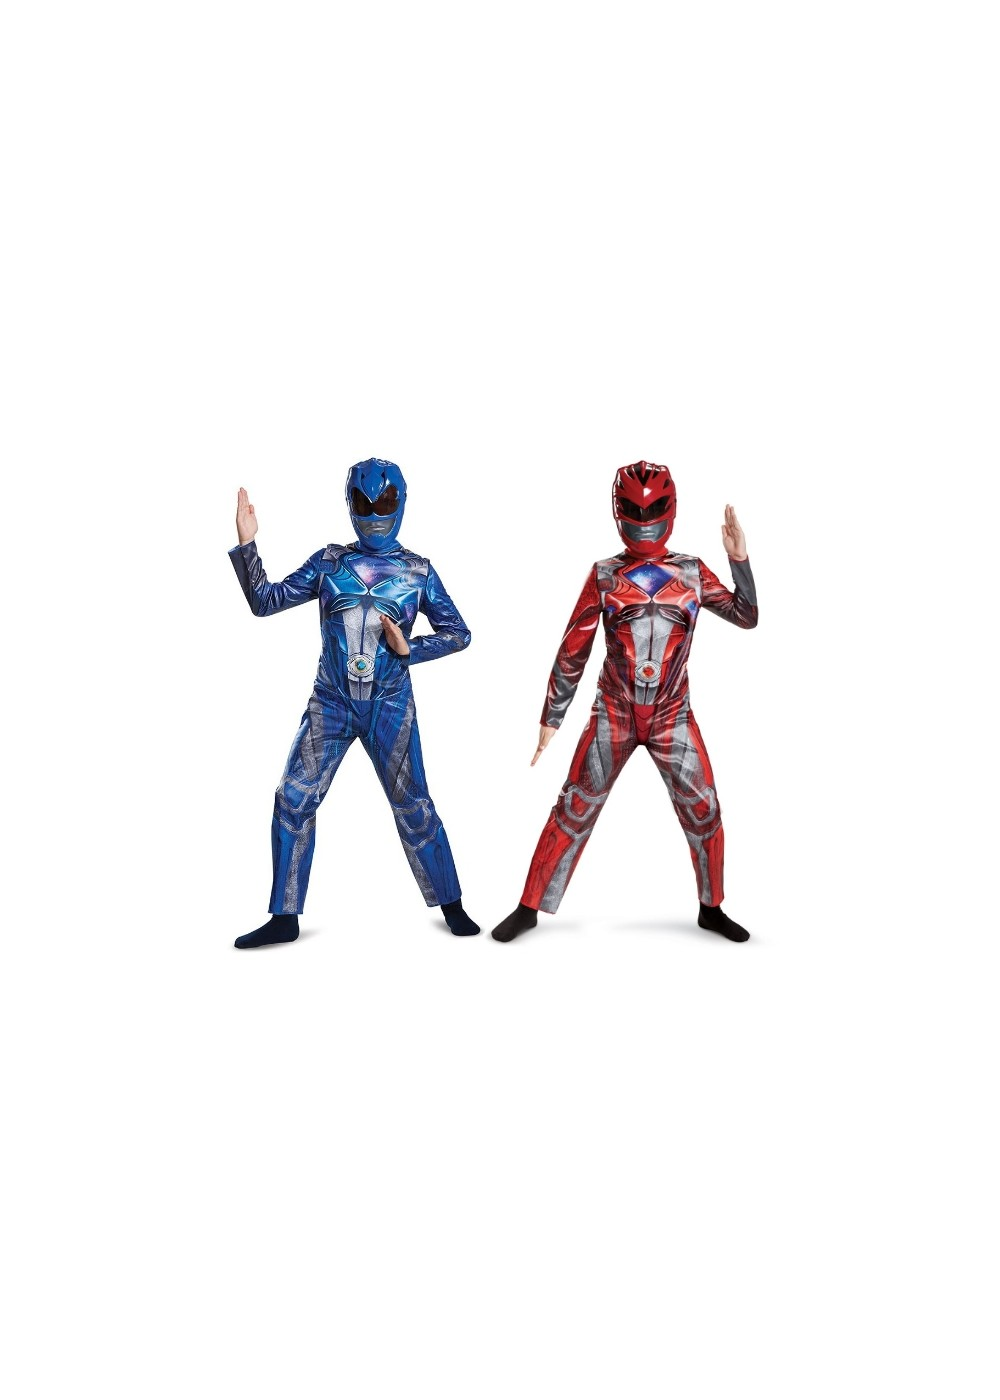 Red and Blue Kids Power Rangers Costume Duo by